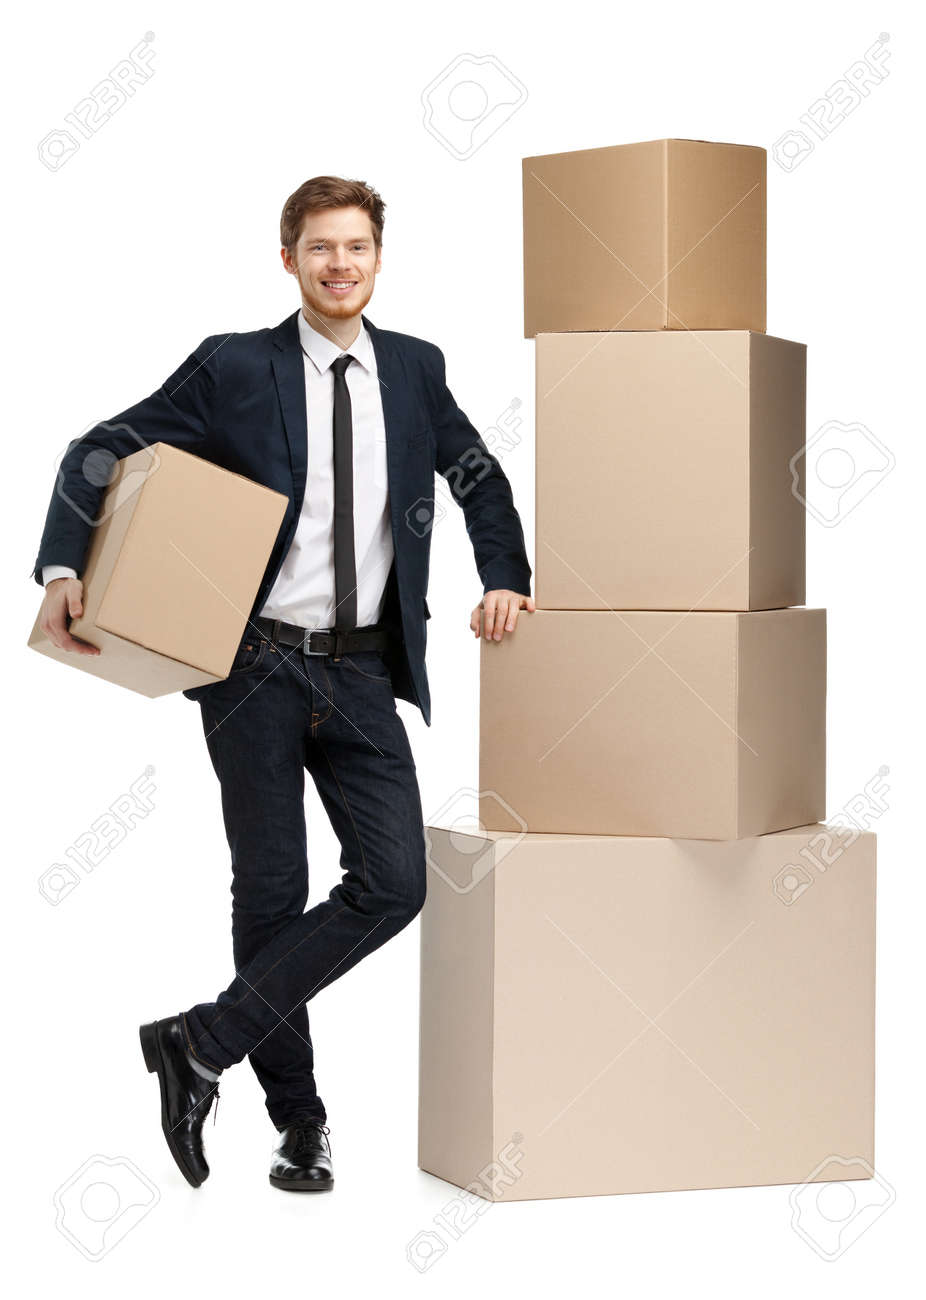 Consultant sales the equipment for schooling, isolated, white background Stock Photo - 14649702